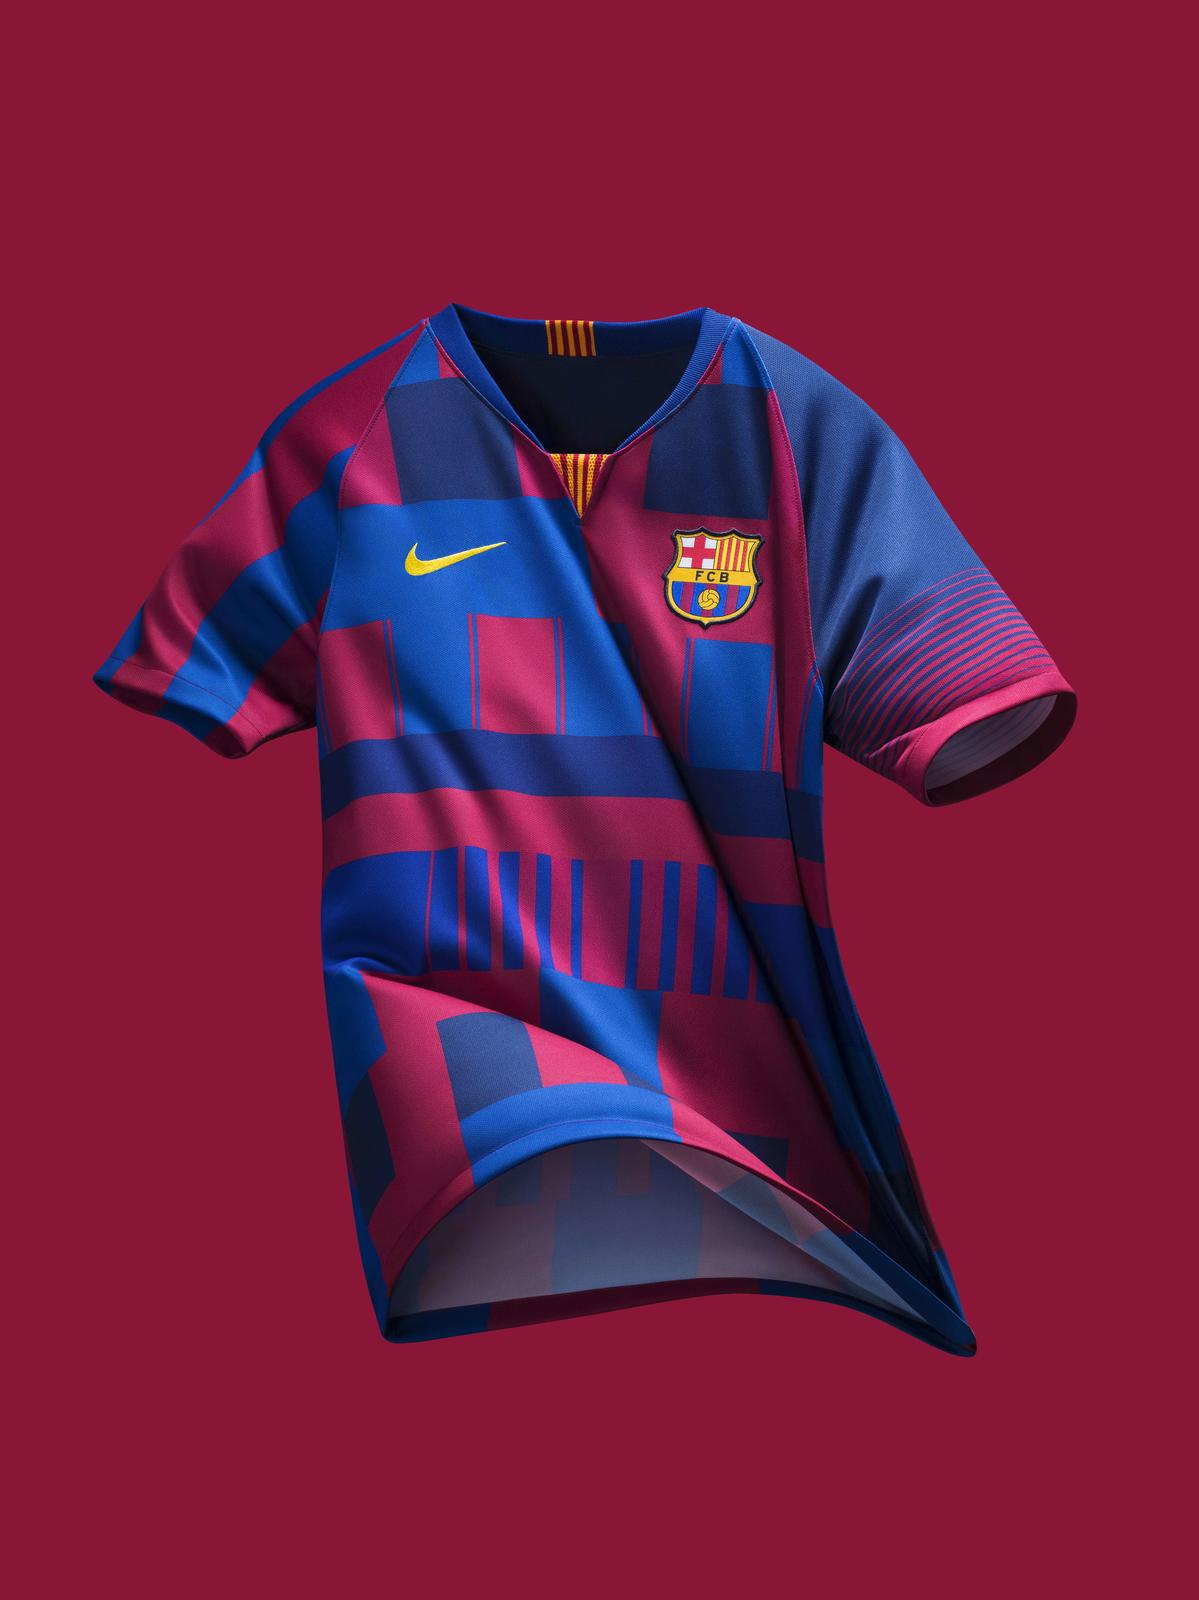 ligeramente Fácil de comprender pedir disculpas  FC Barcelona What The 20th Anniversary Jersey - Nike News